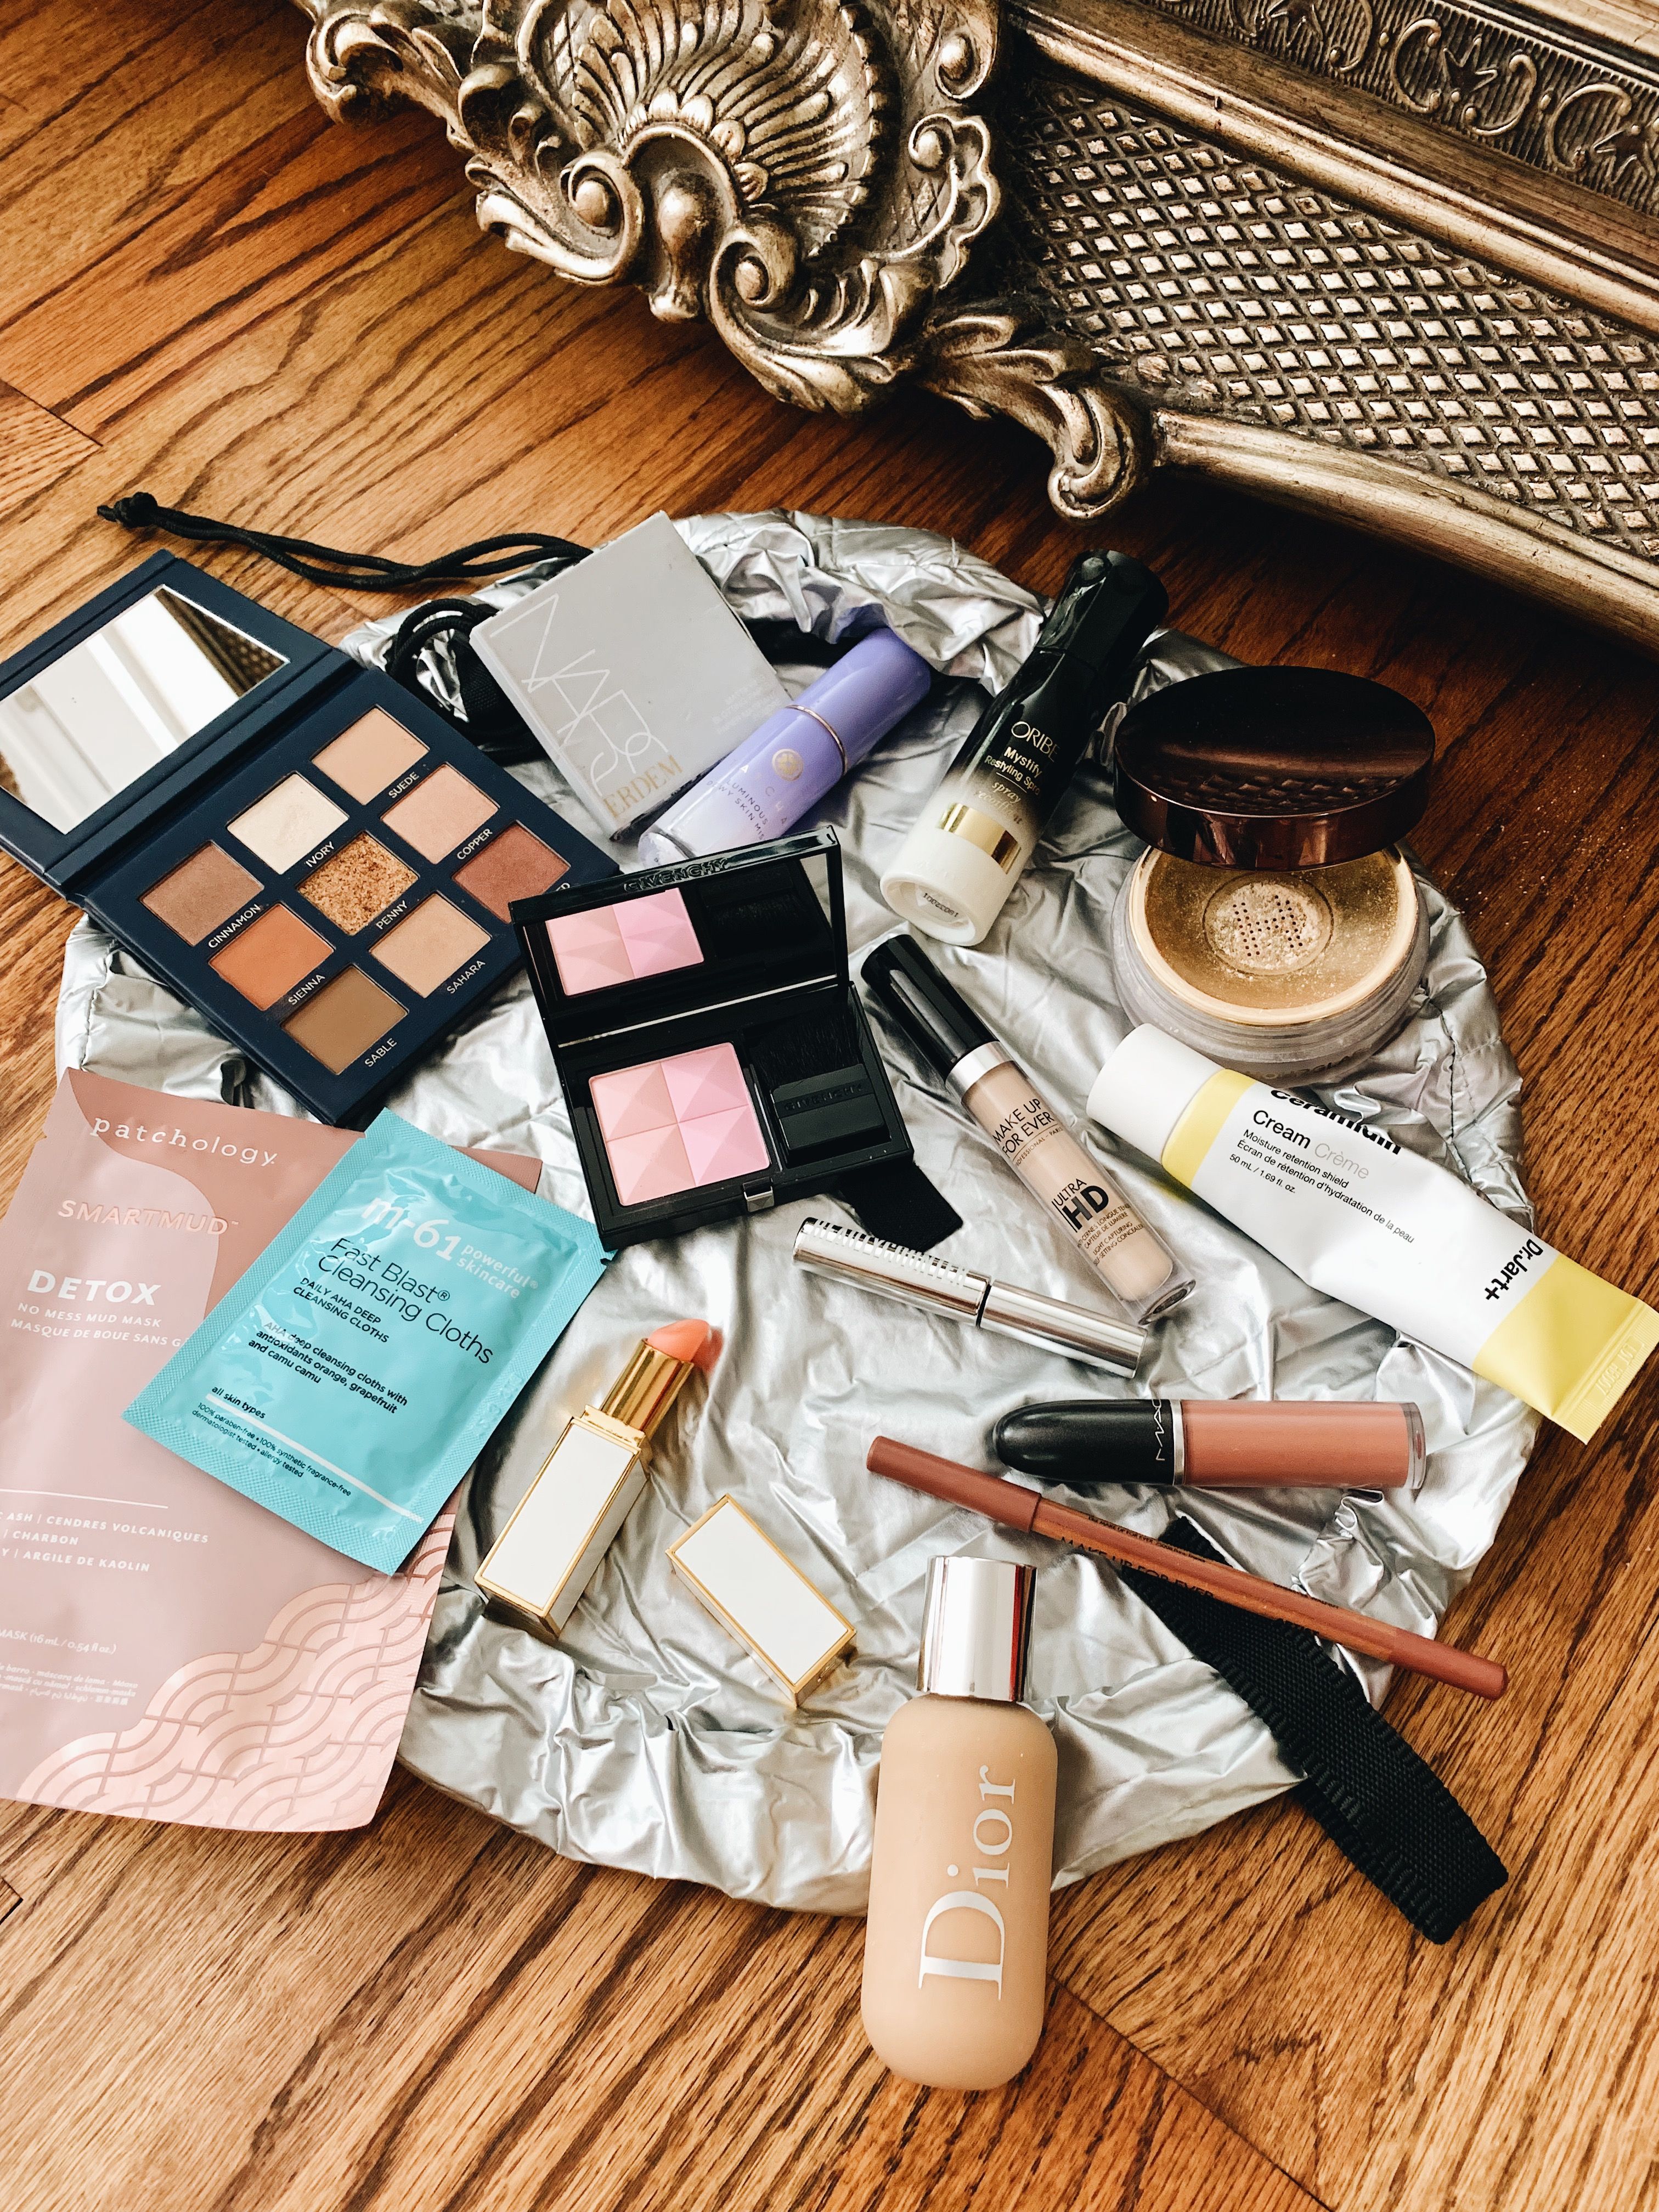 what's in my makeup bag, jessica wang makeup, beauty blogger, blogger makeup routine // Notjessfashion.com